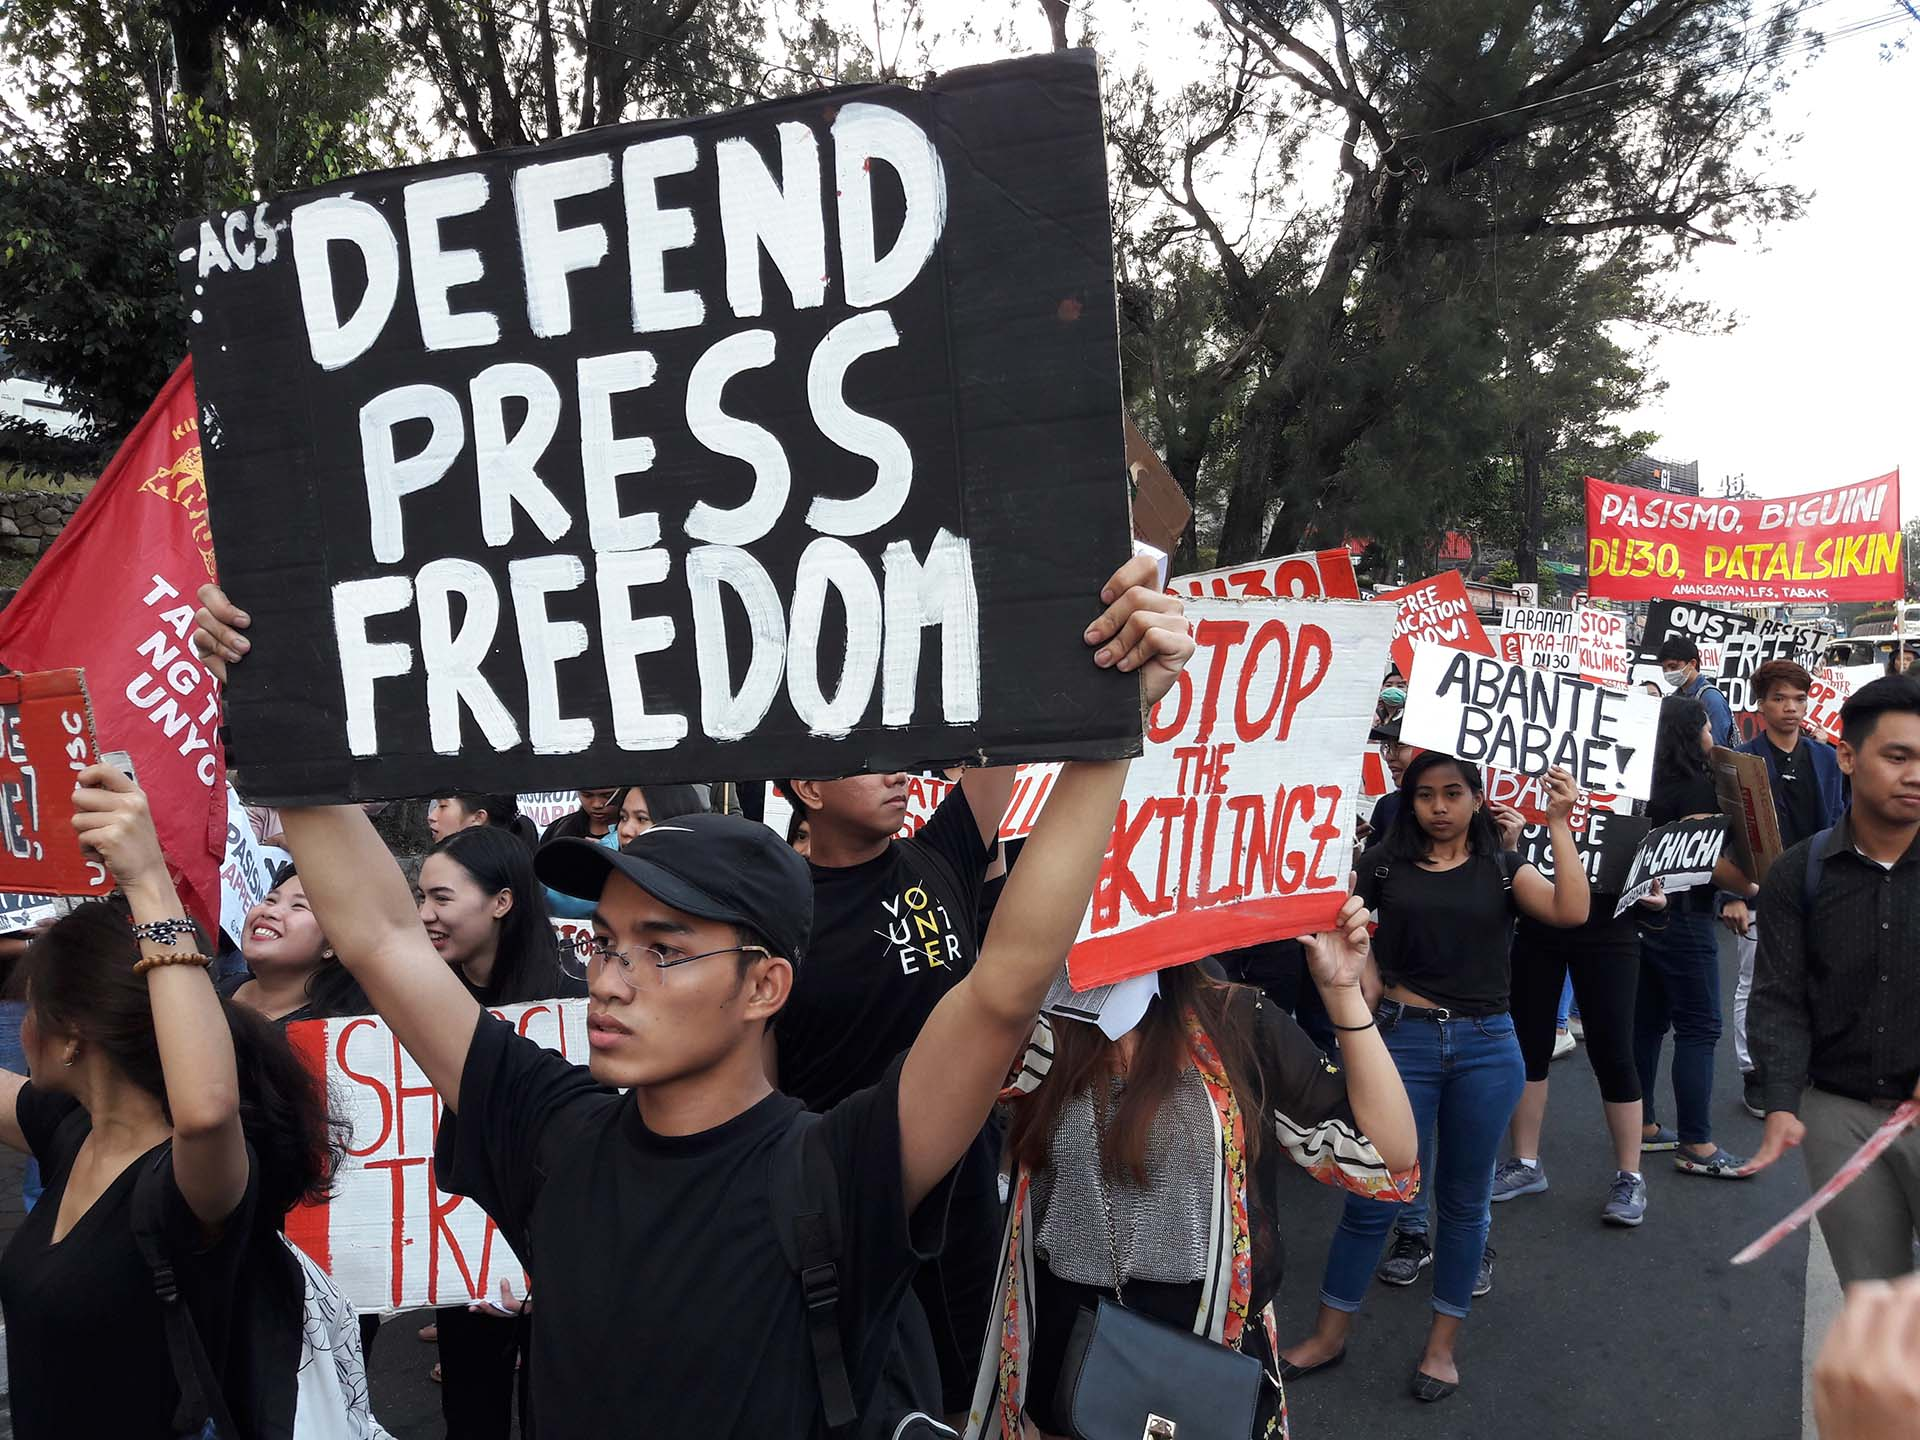 DEFEND PRESS FREEDOM. In Baguio City, students and activists slam the government's attack against various media organizations. Photo by Mau Victa/Rappler